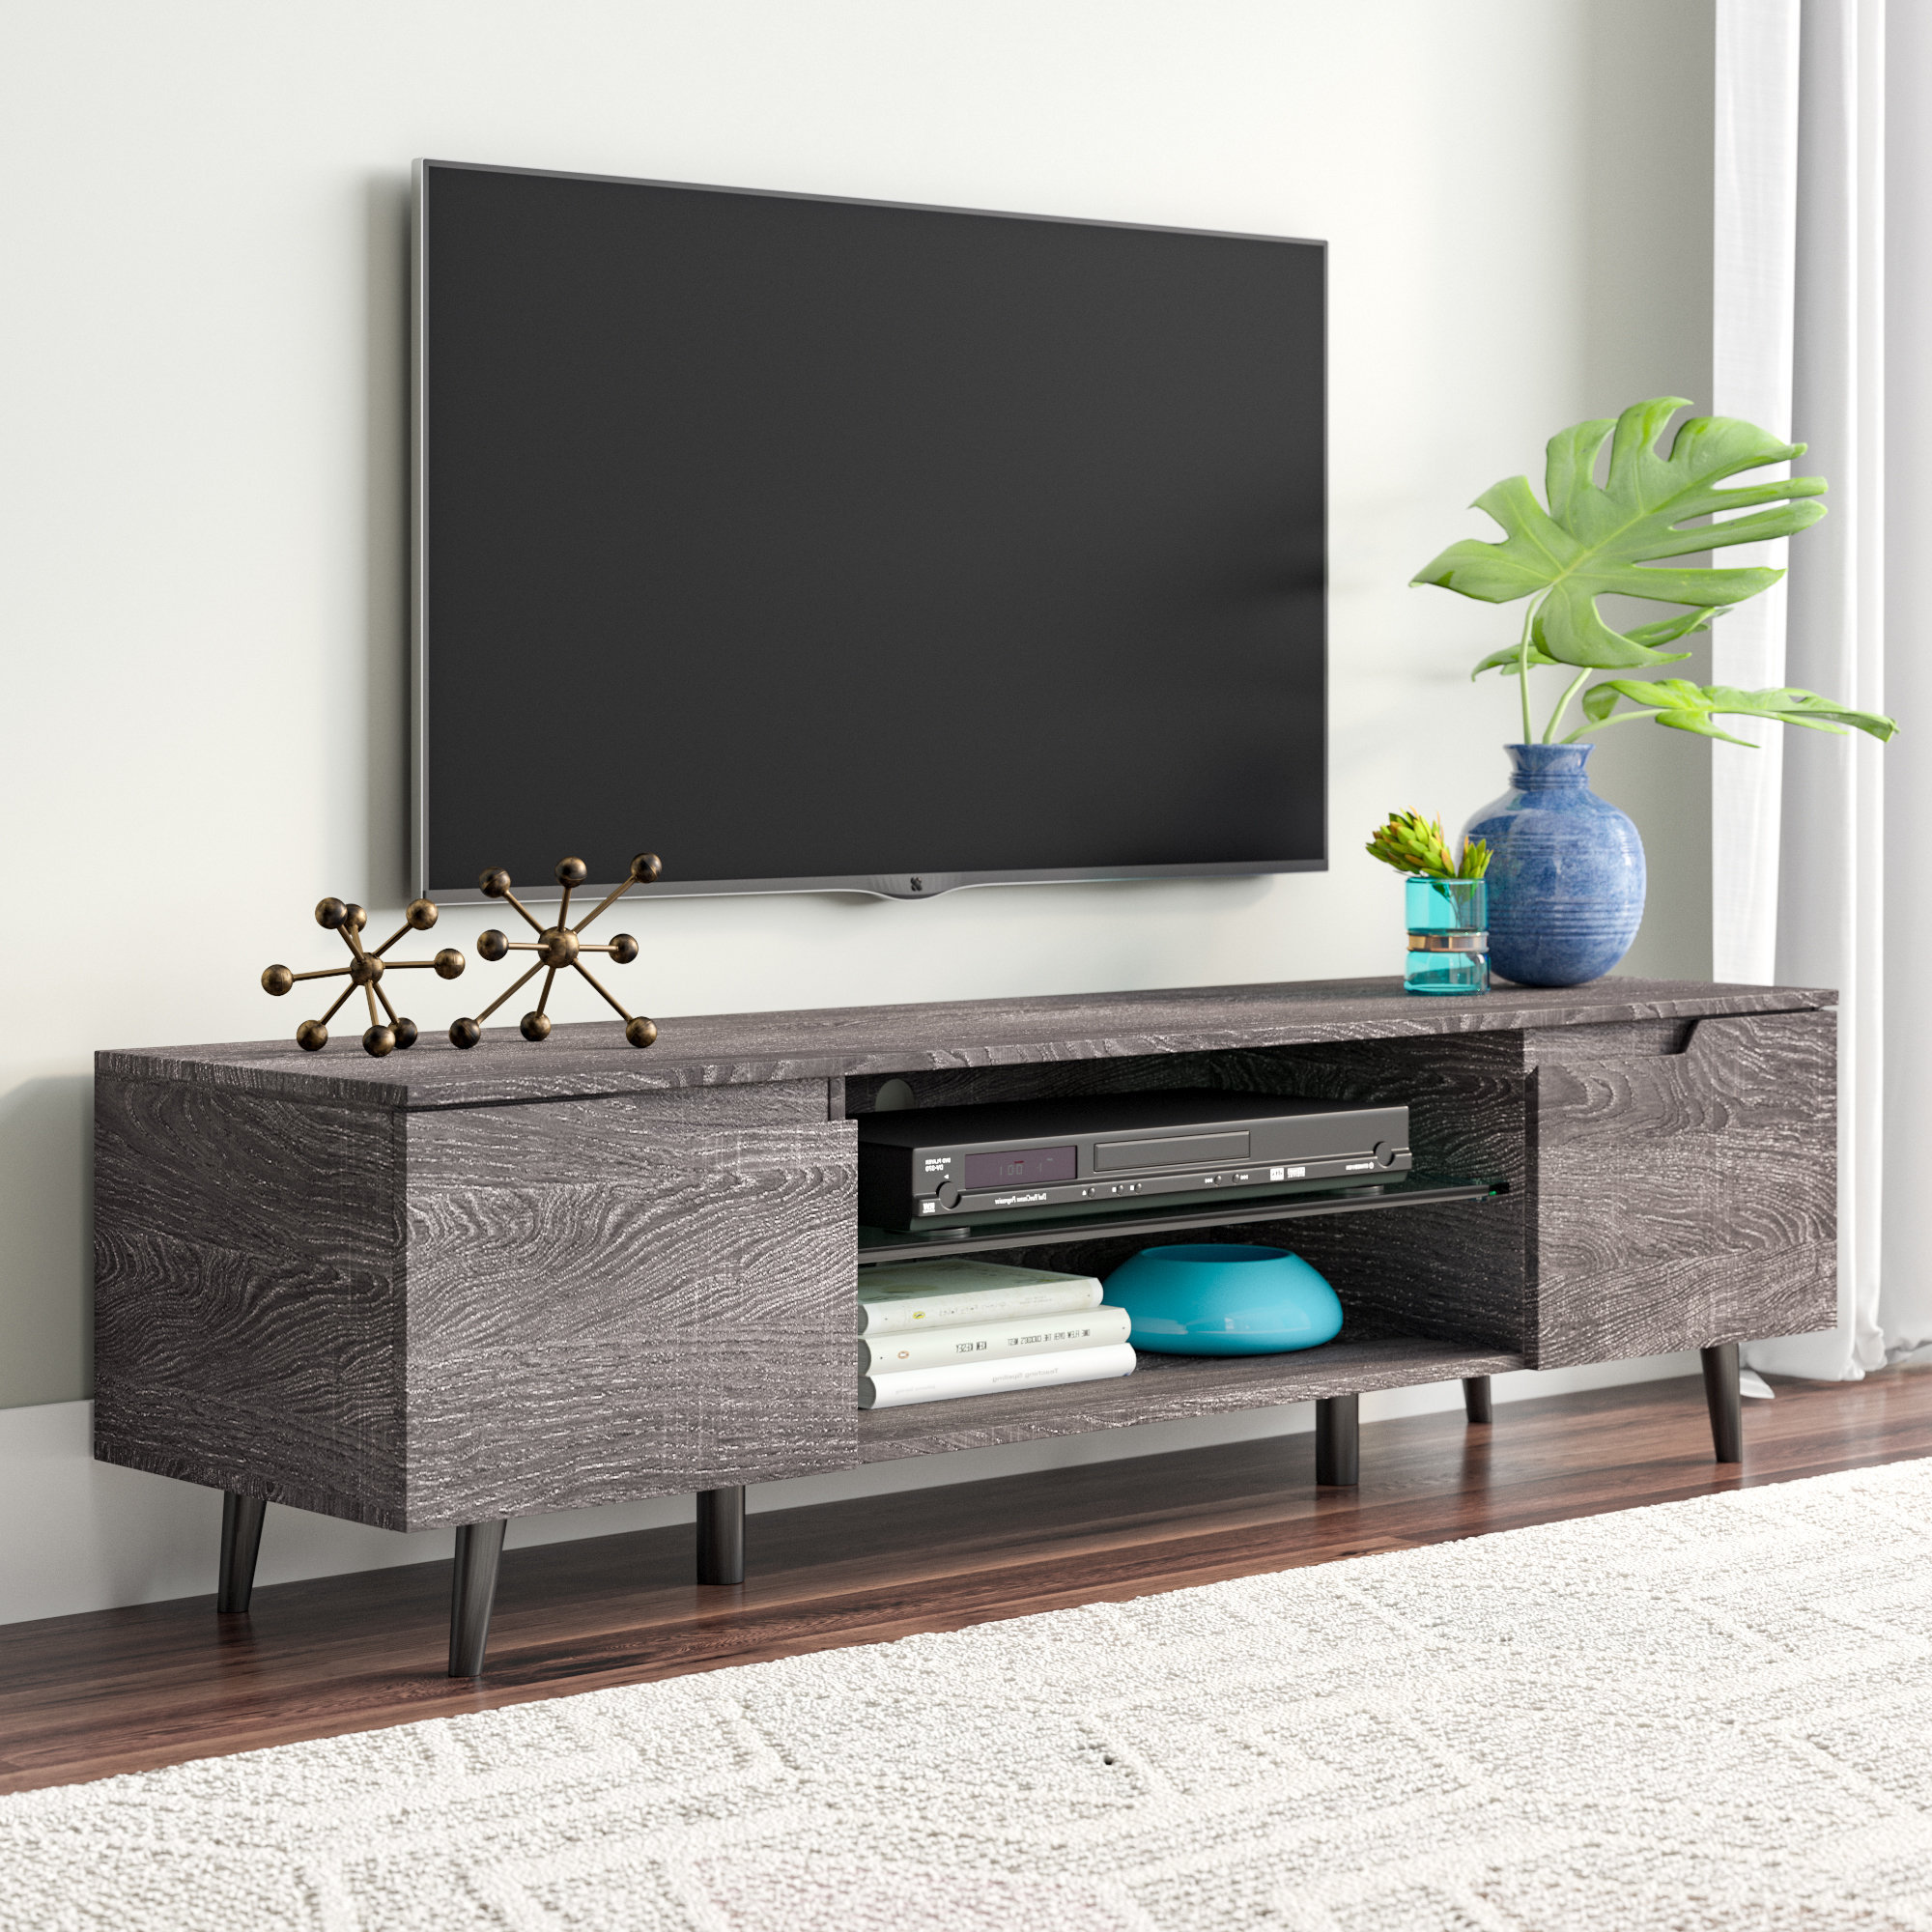 Metal Tv Stands You'll Love (View 8 of 20)